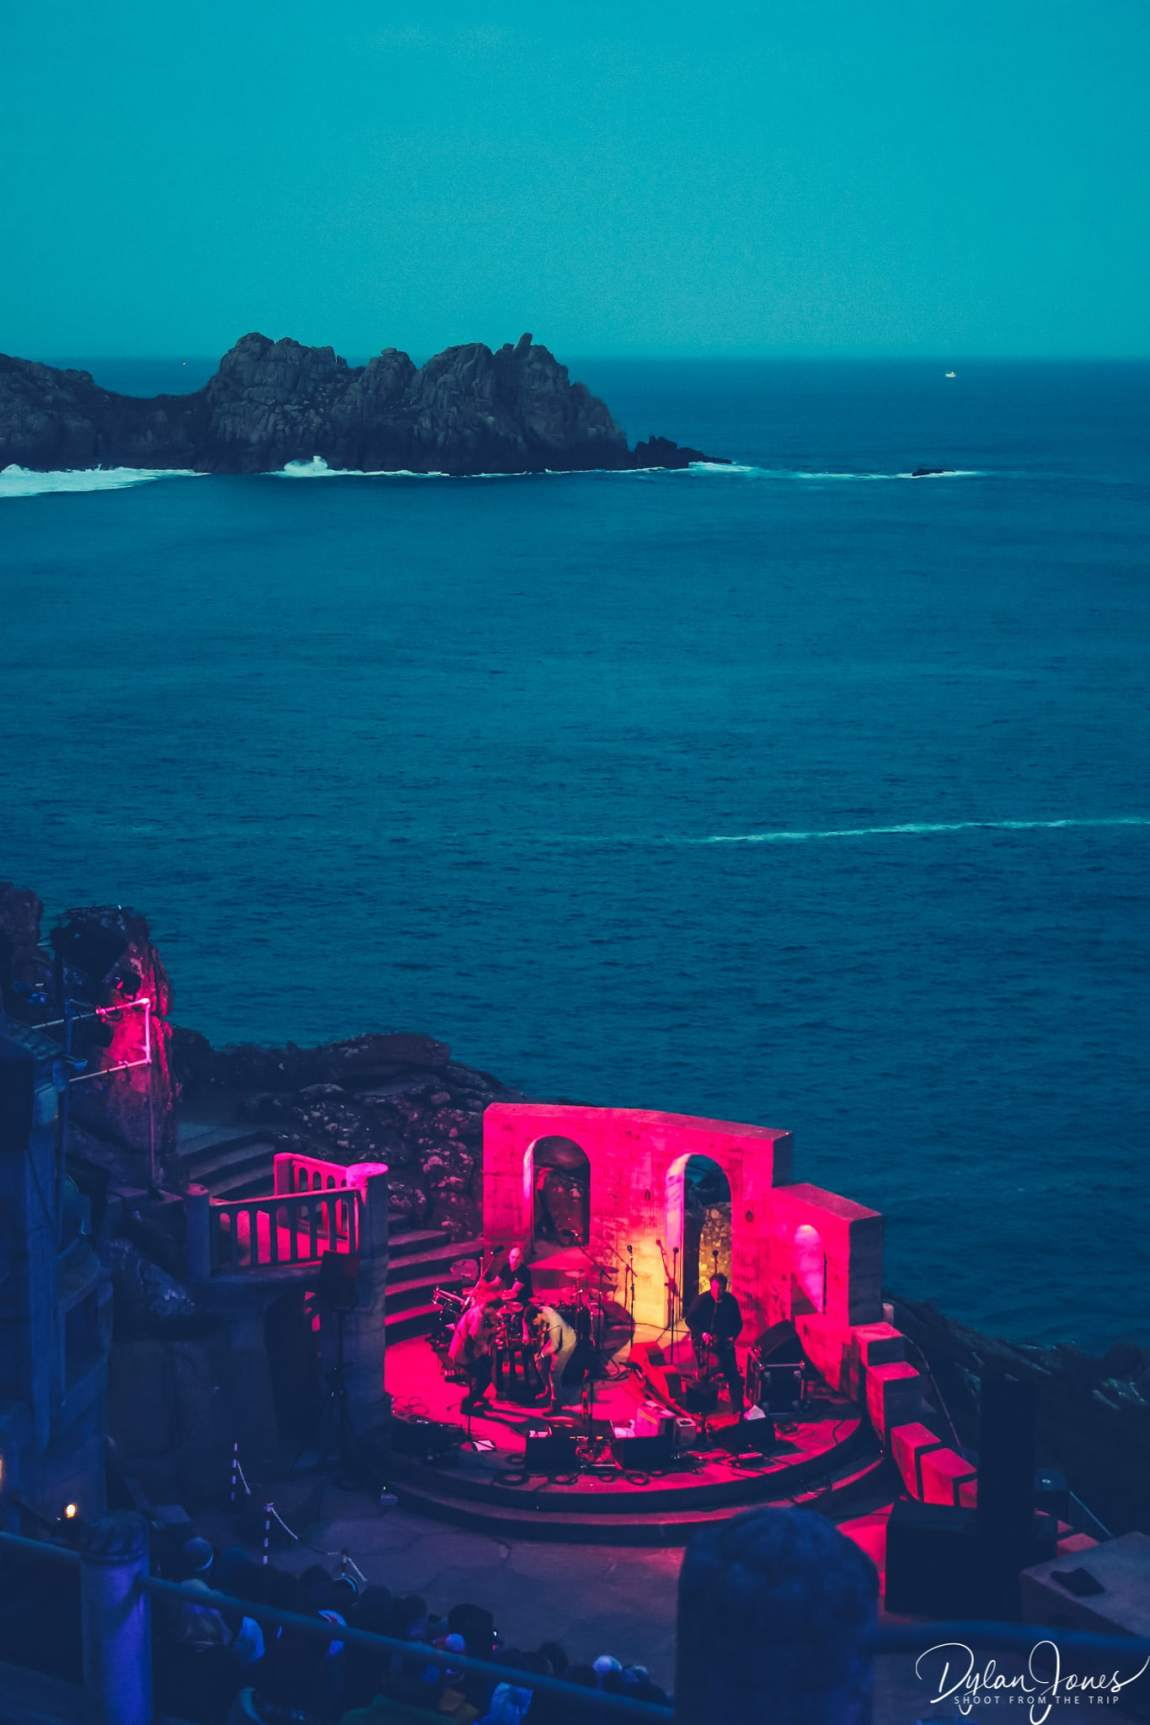 The backdrop of the Minack Theatre stage at dusk on the South Cornwall coast